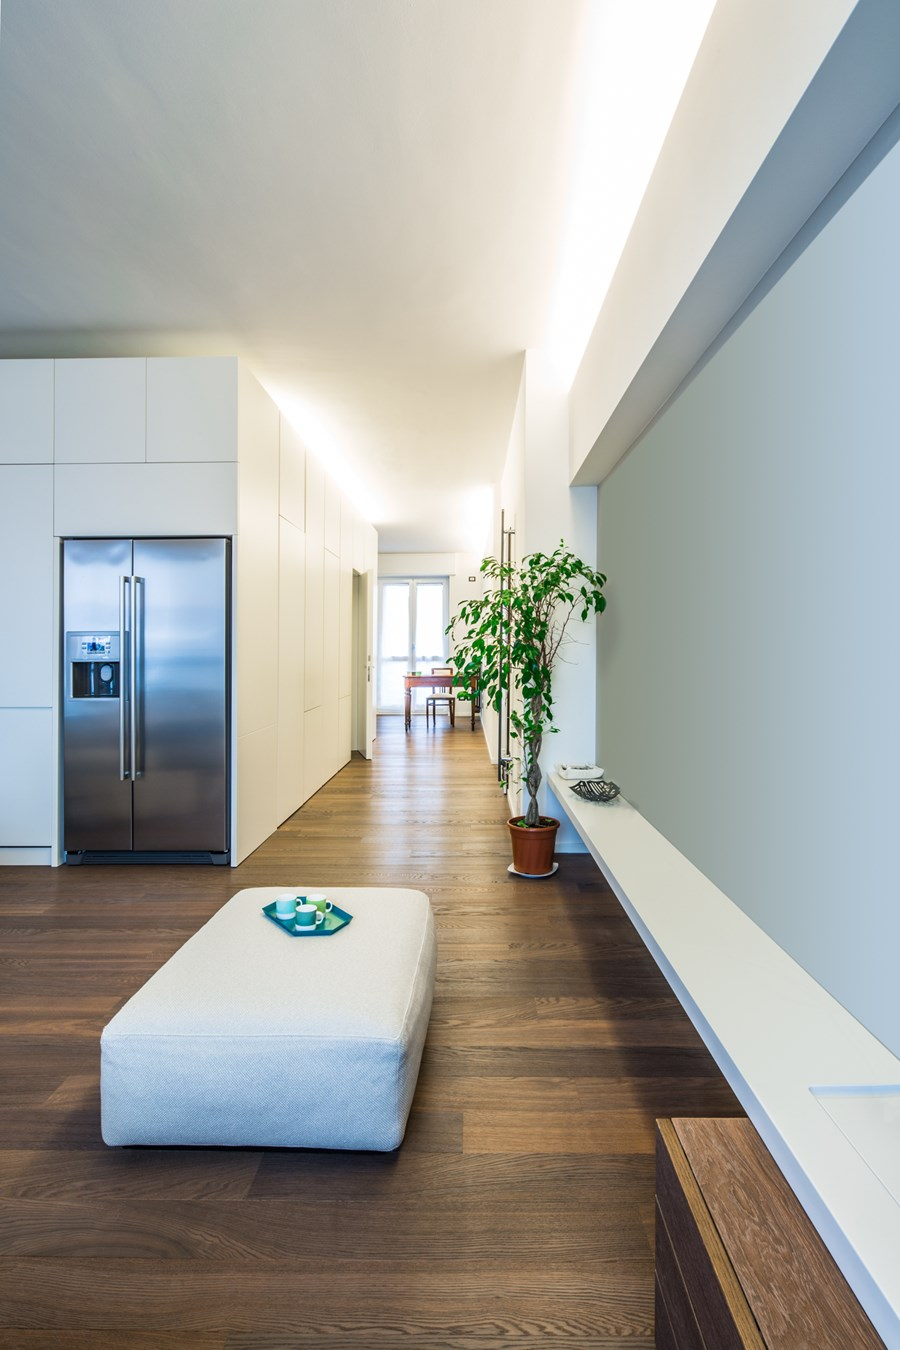 CST Refurbishment and extension by Piùerre 04